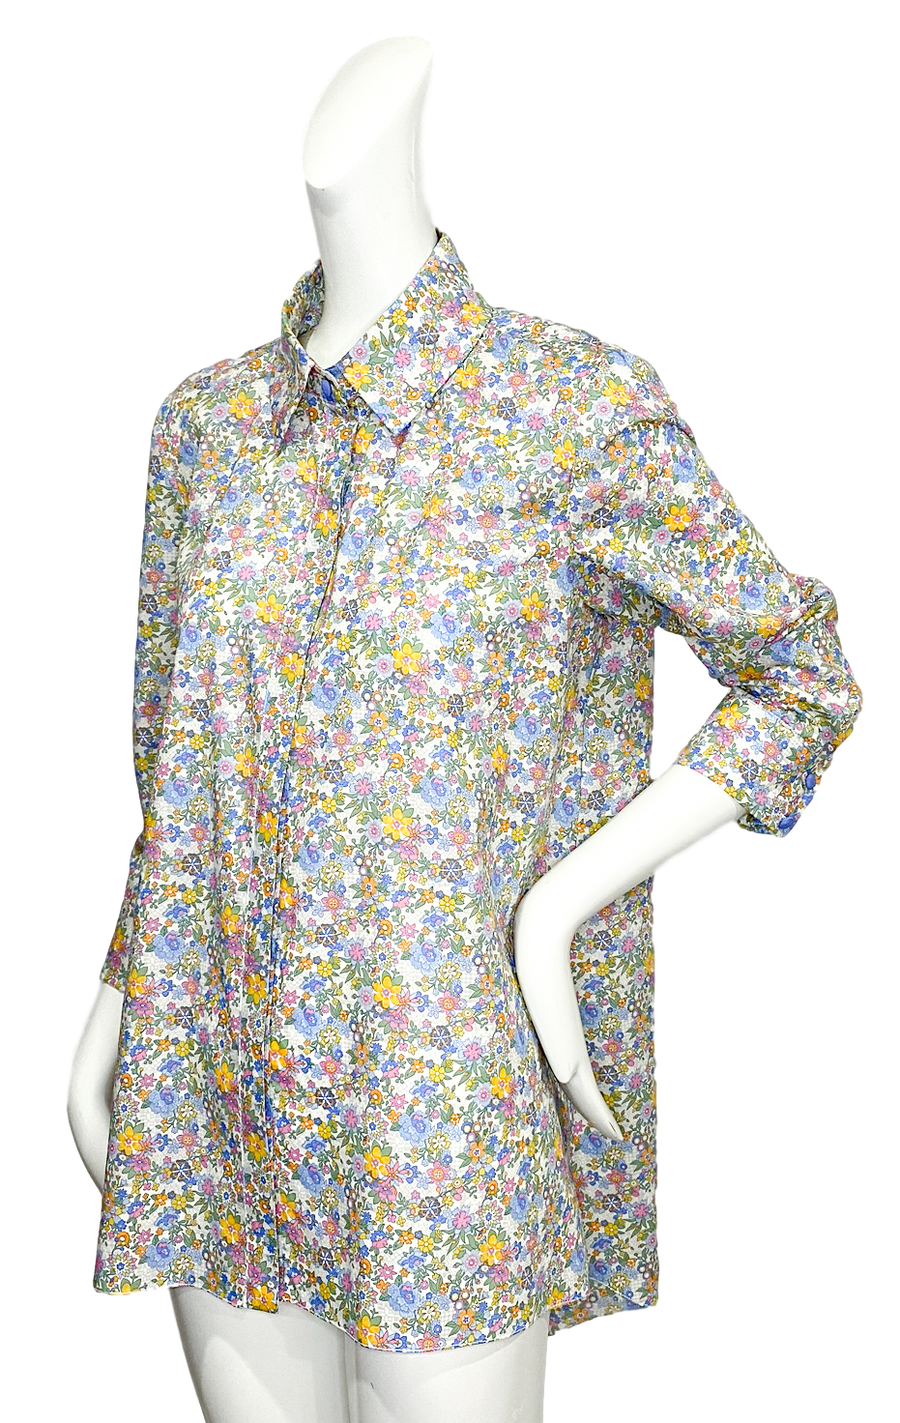 Meri Blouse | Liberty Prints